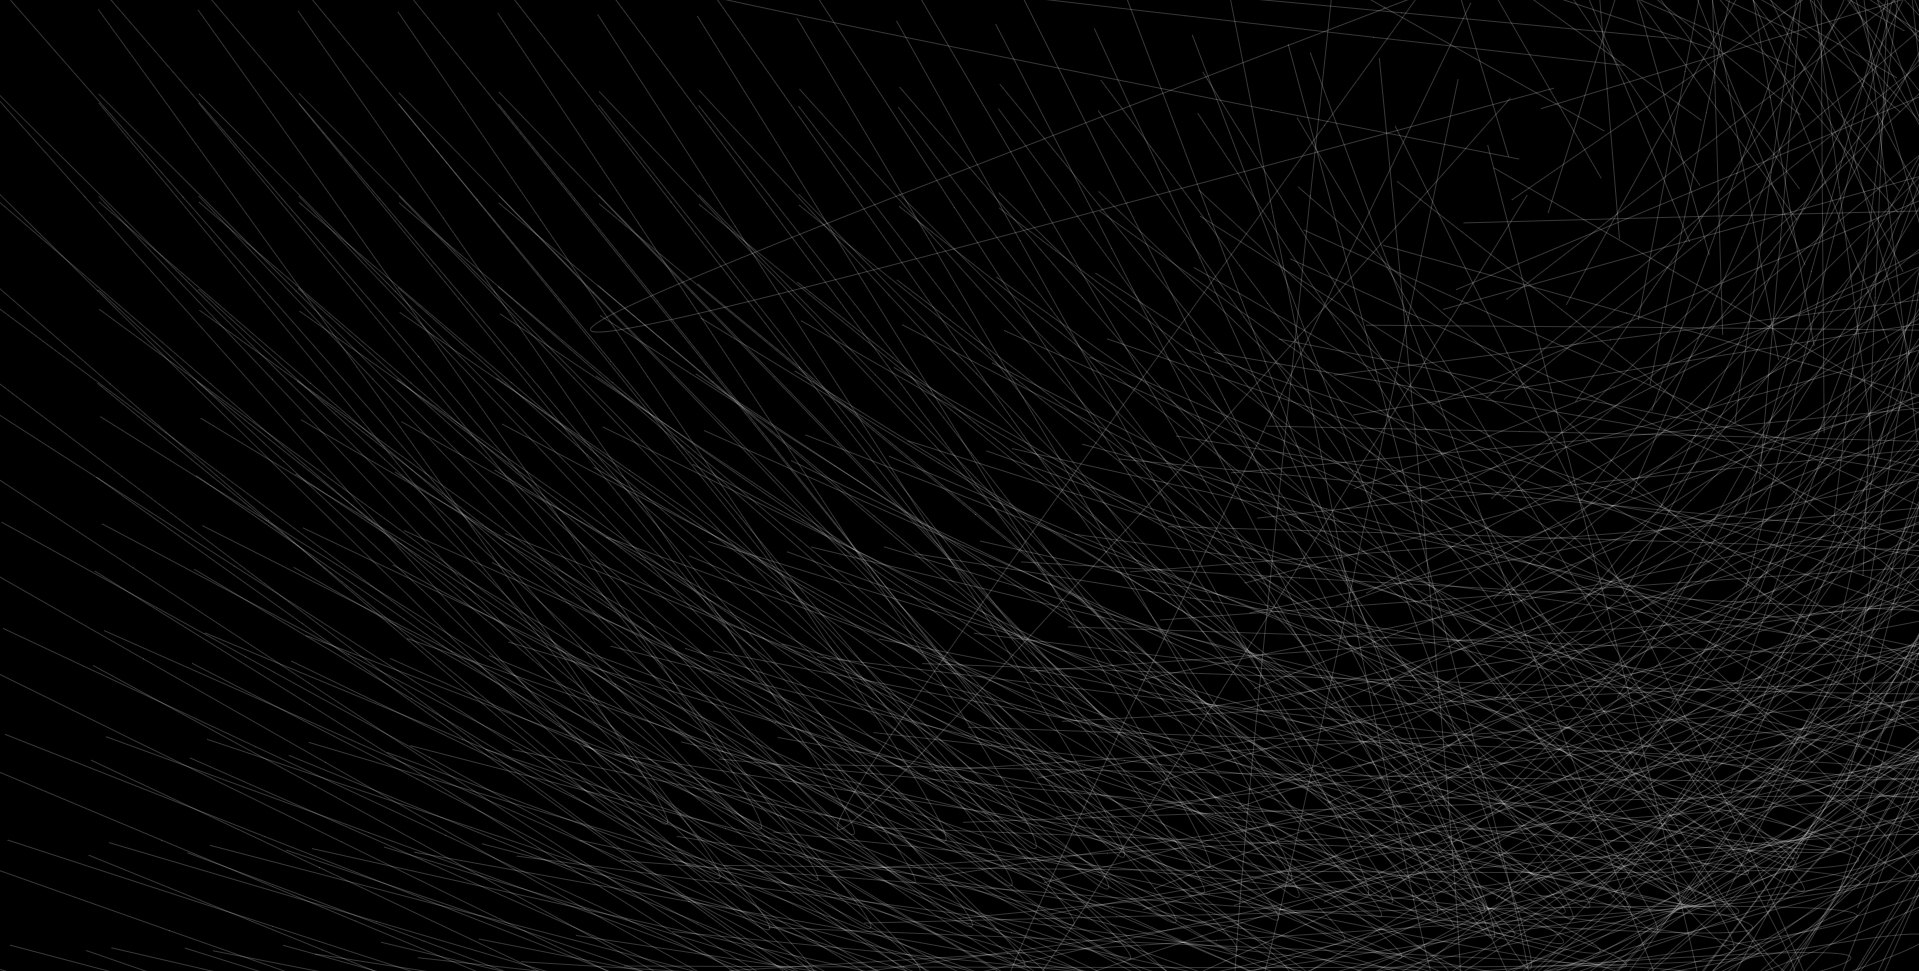 p5.js art websocket jon montenegro